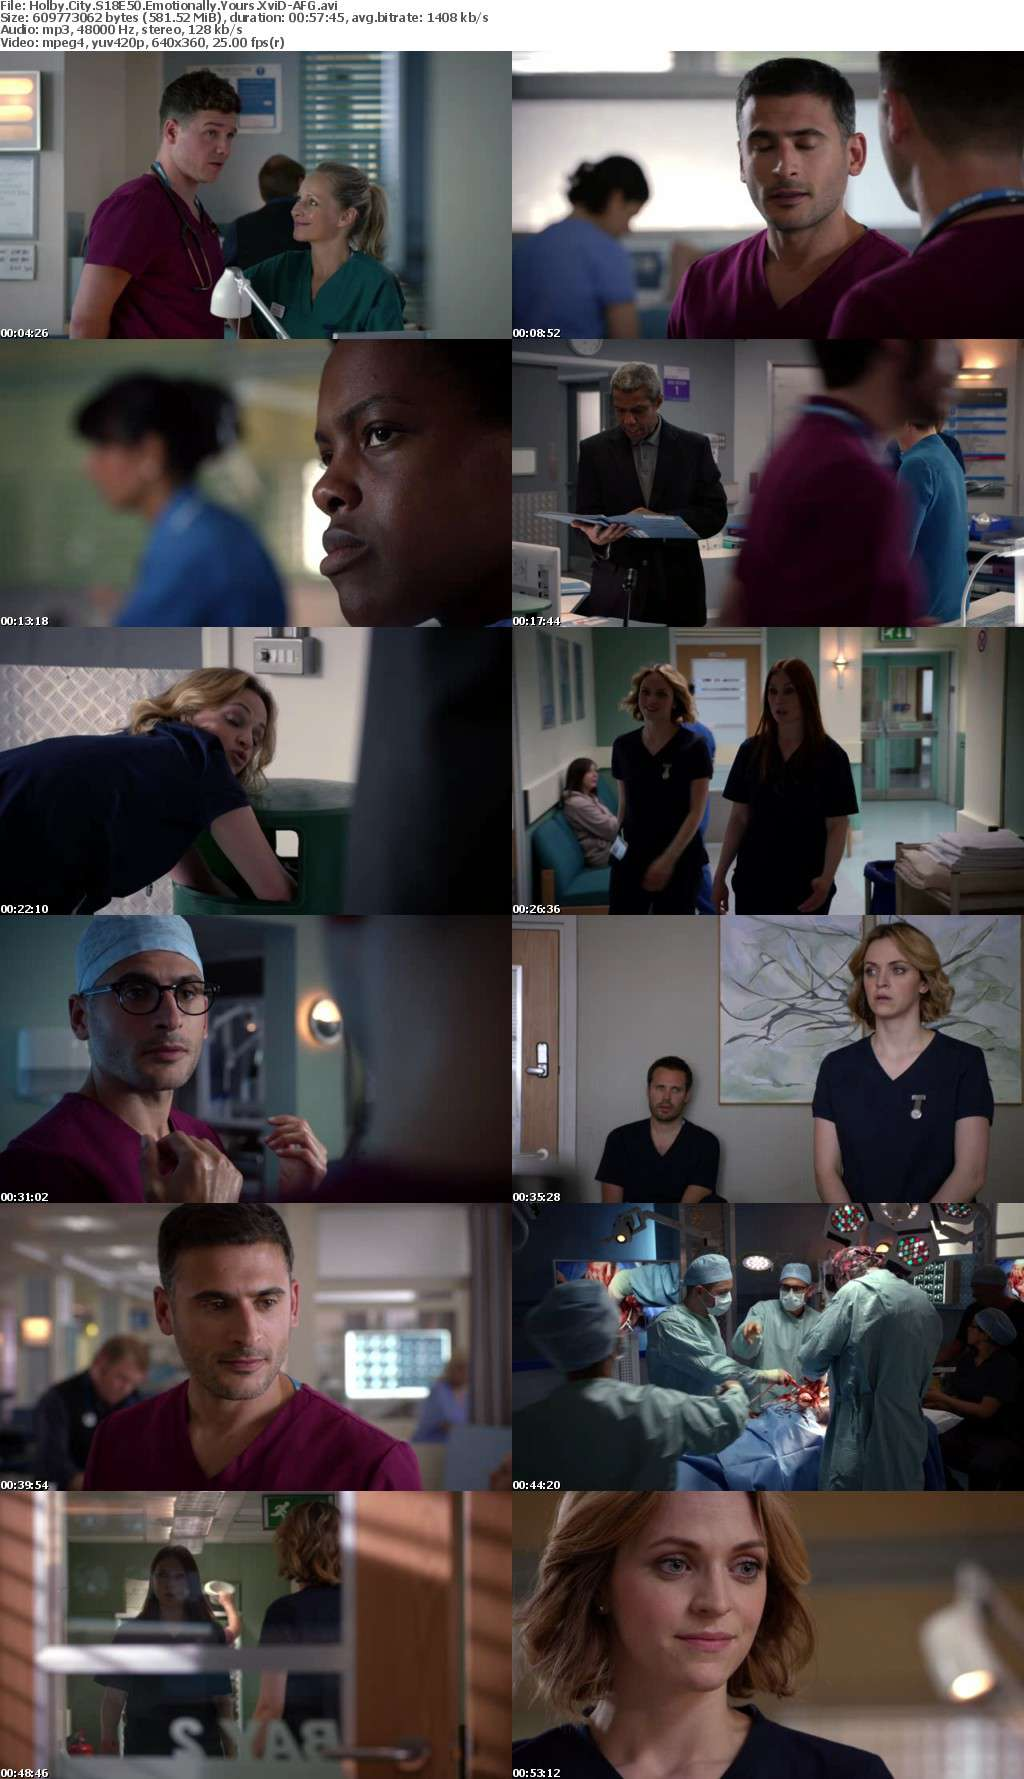 Holby City S18E50 Emotionally Yours XviD-AFG